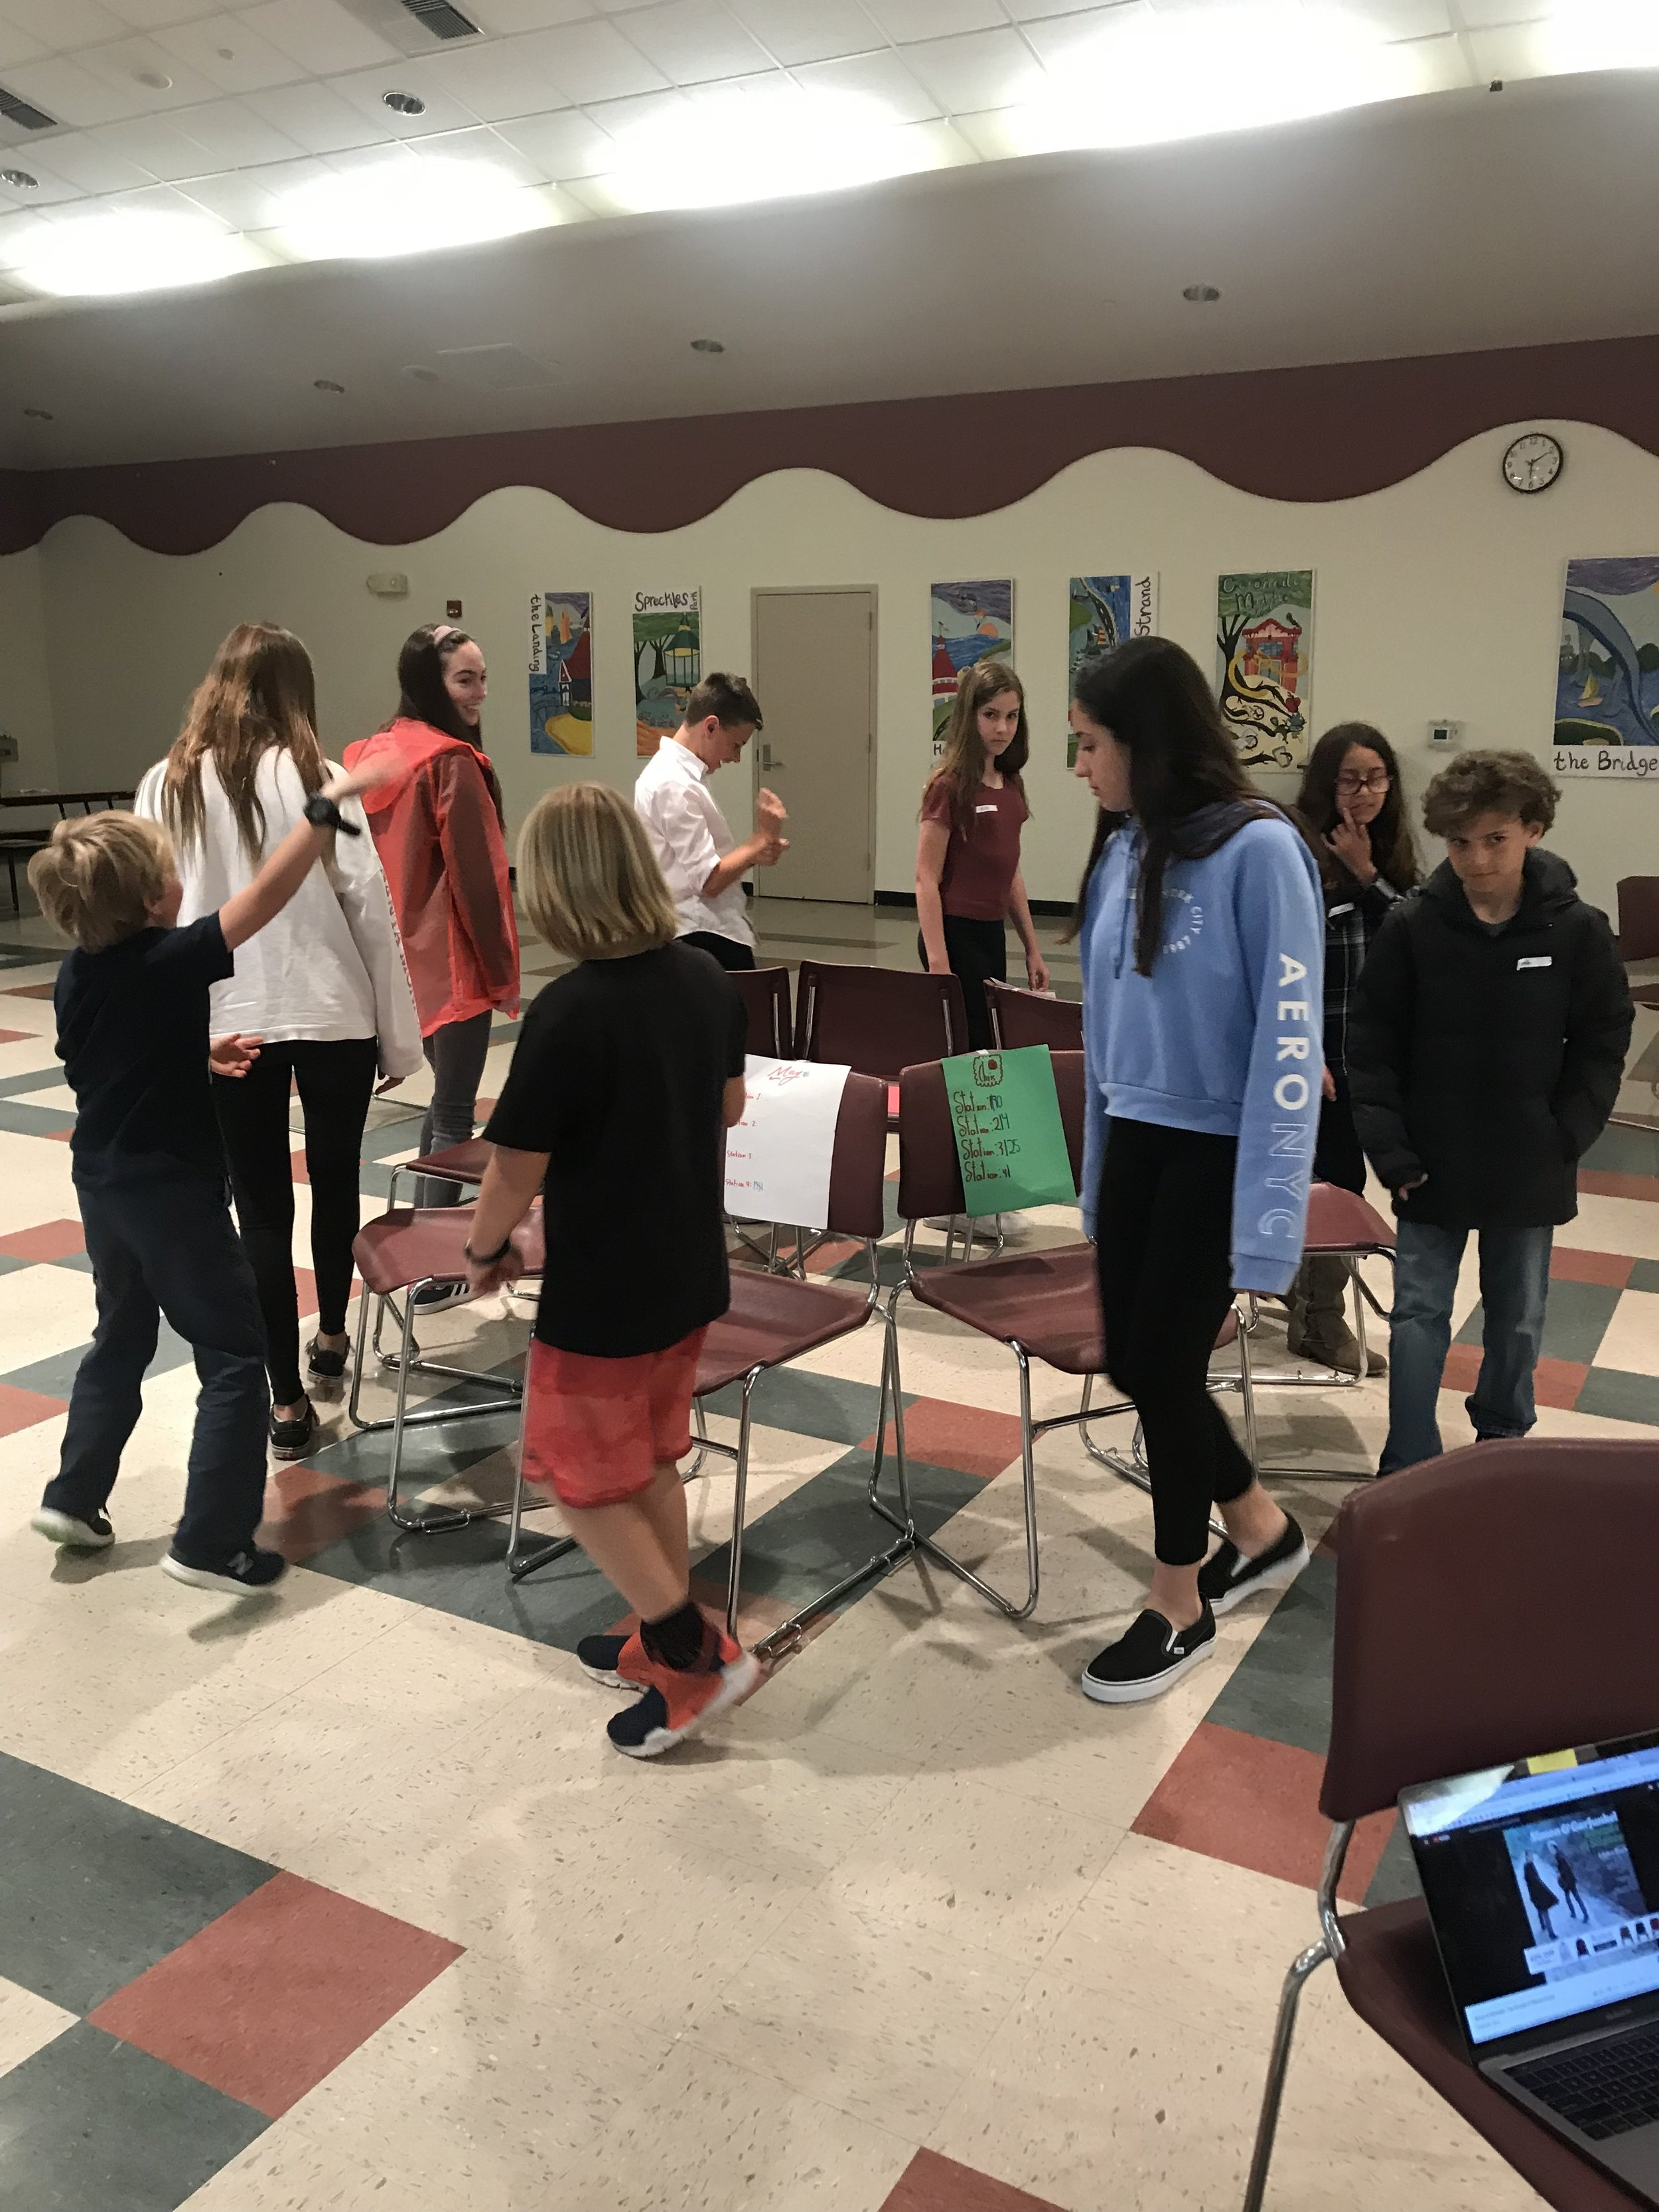 Playing Musical Chairs at a Music Workshop